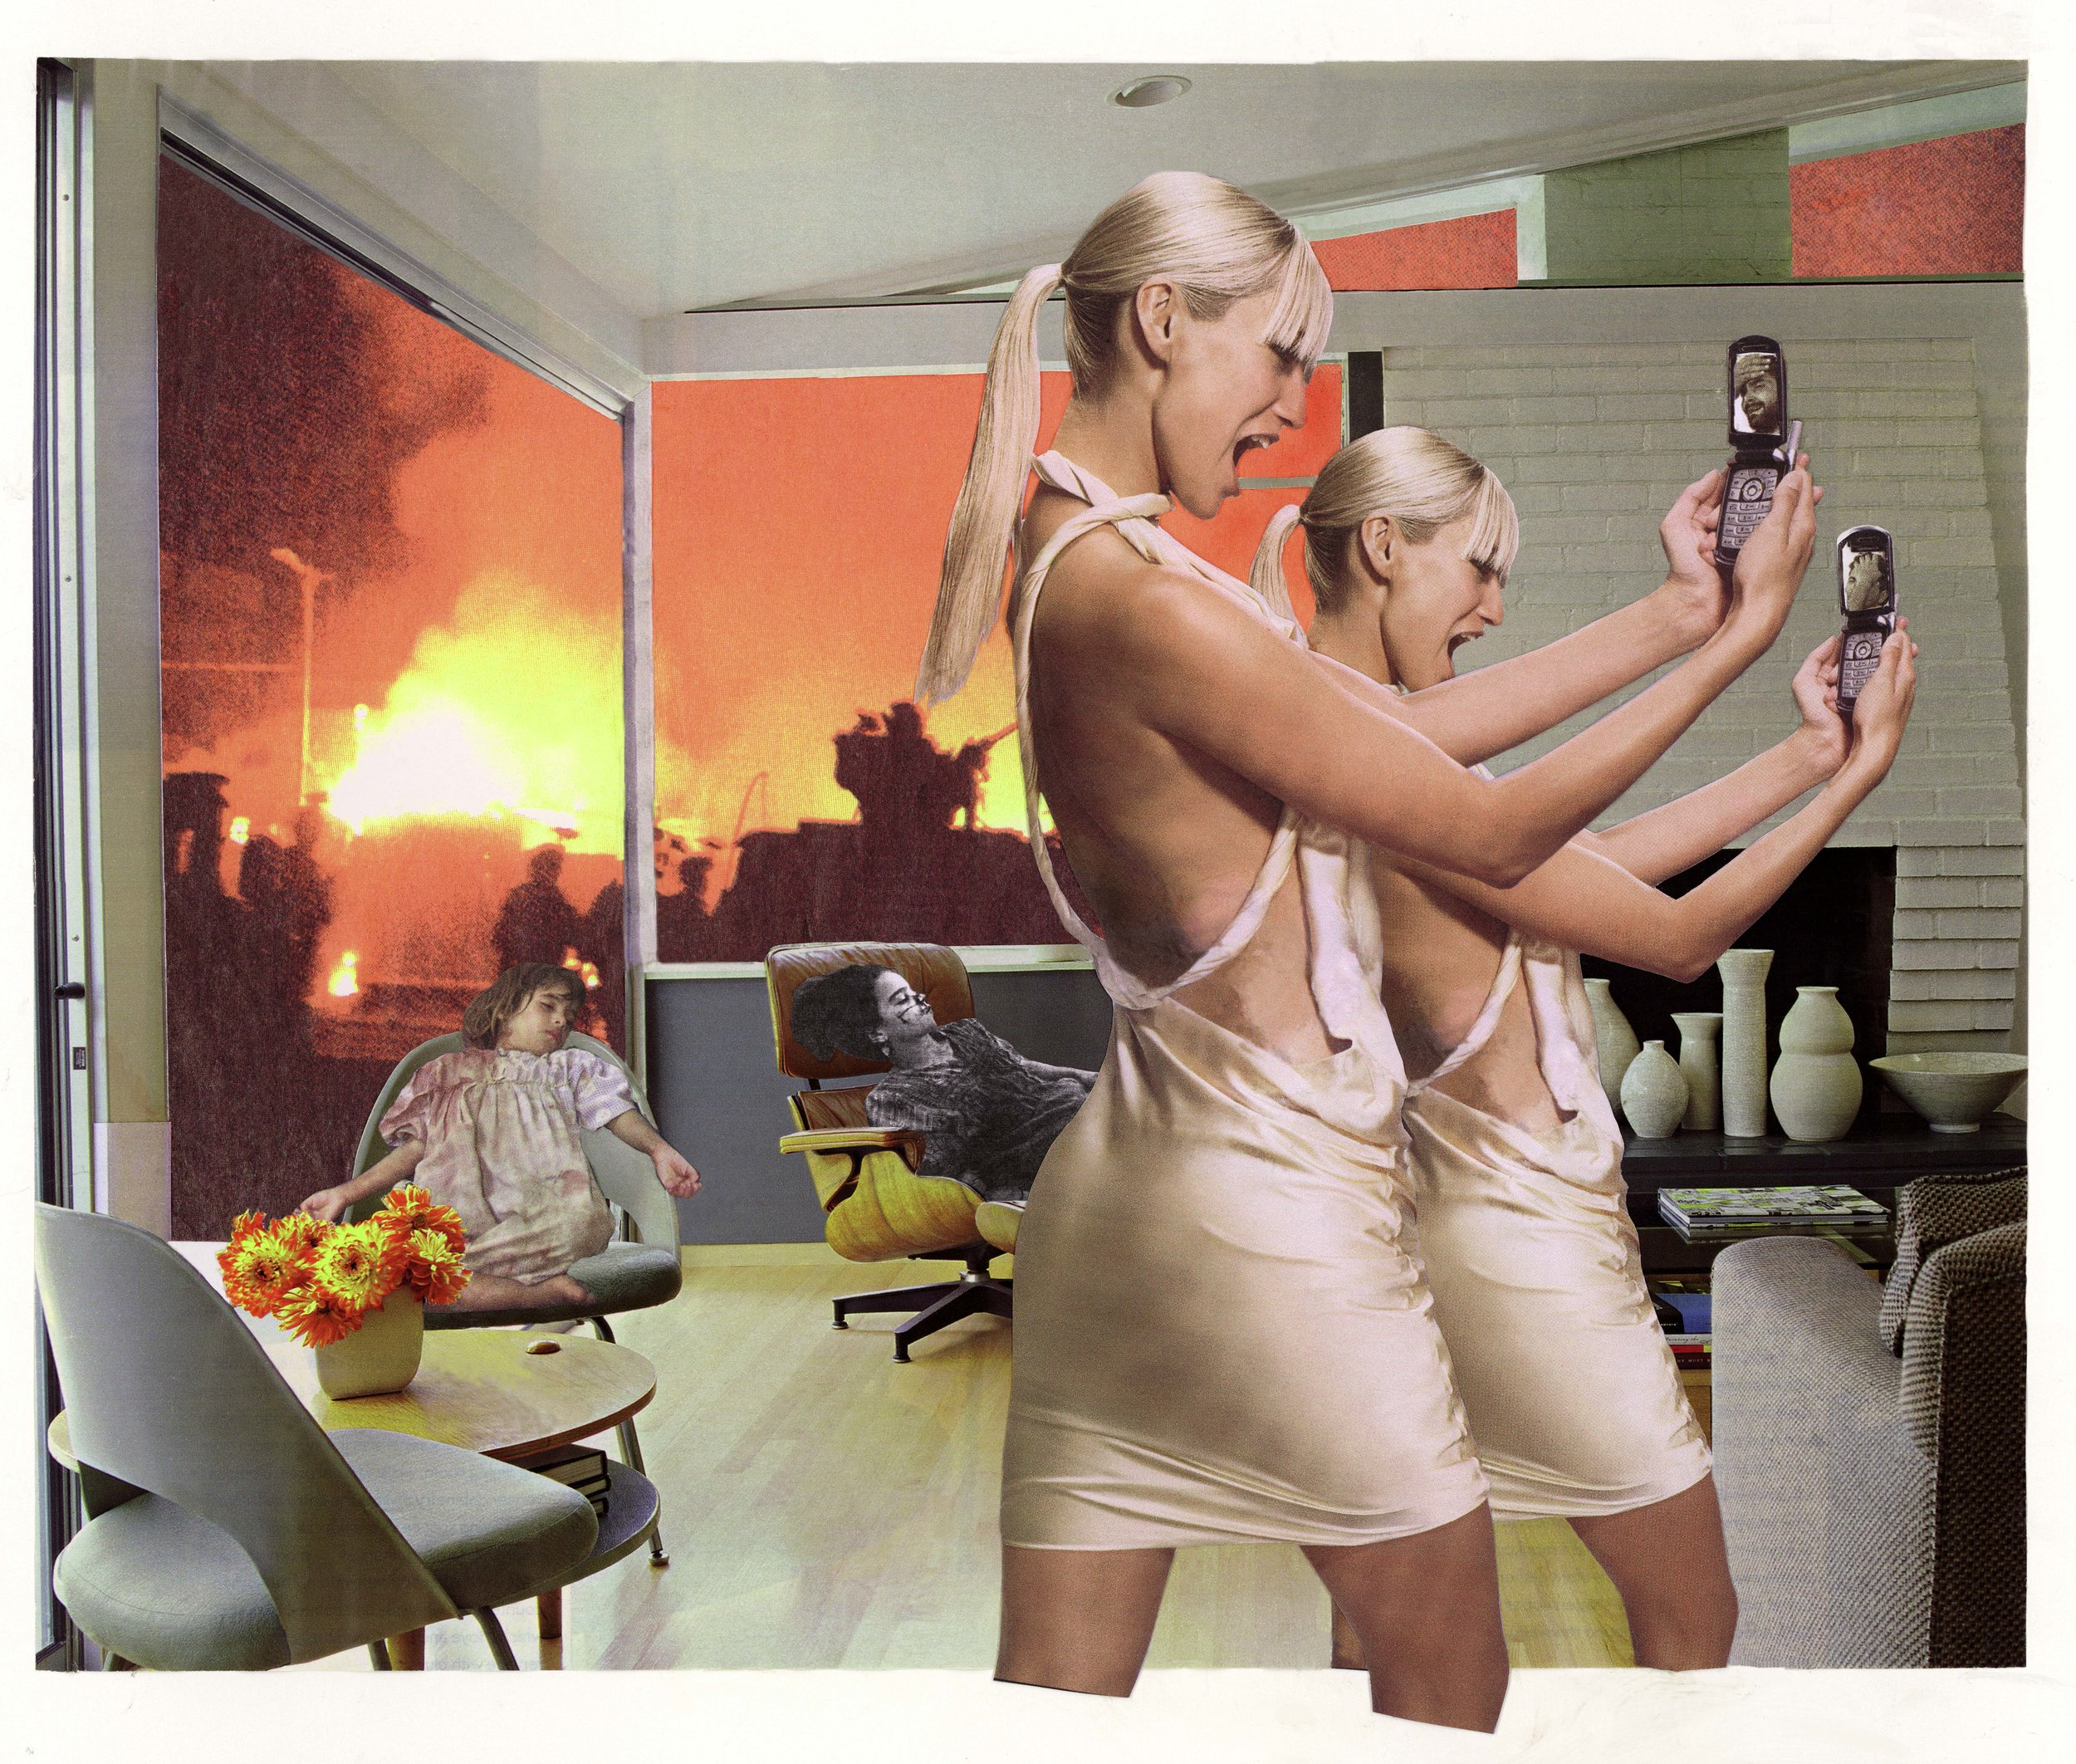 Martha Rosler, Photo-Op, from the series House Beautiful: Bringing the War Home, New Series, 2004, photomontage Artwork © Martha Rosler; image courtesy of the artist and Mitchell-Innes & Nash, New York